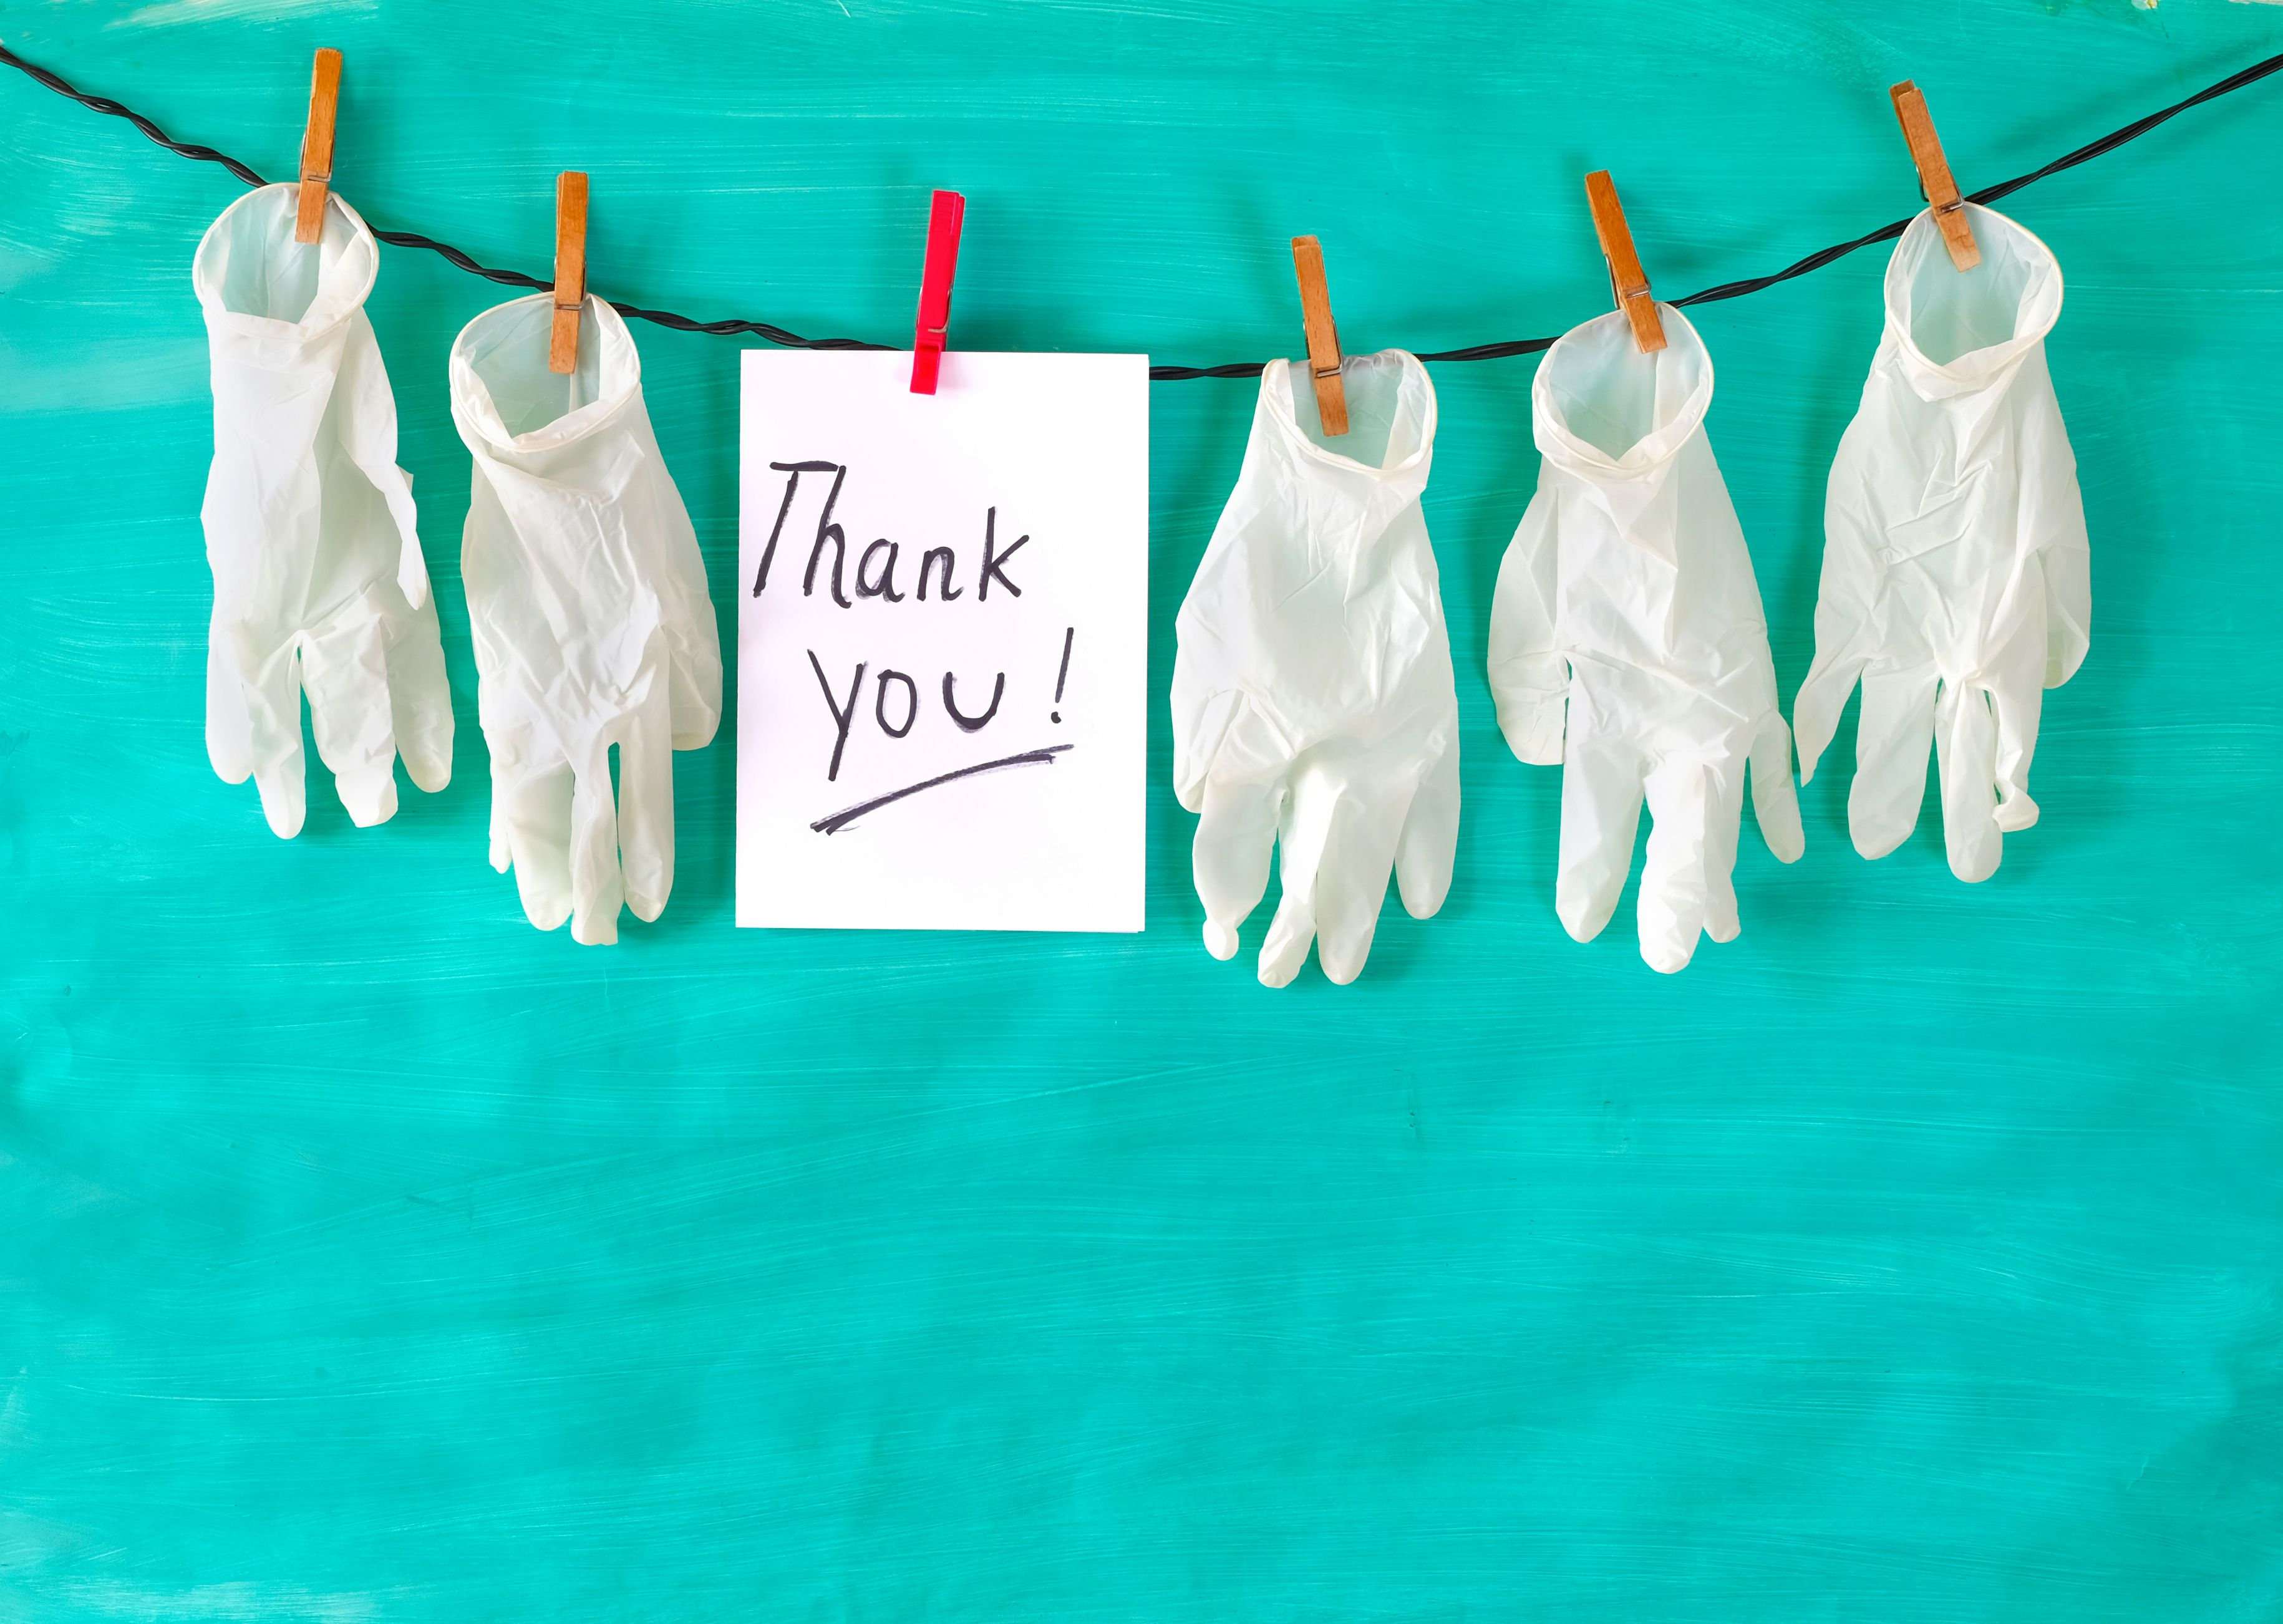 Nurses gloves and 'thank you' sign